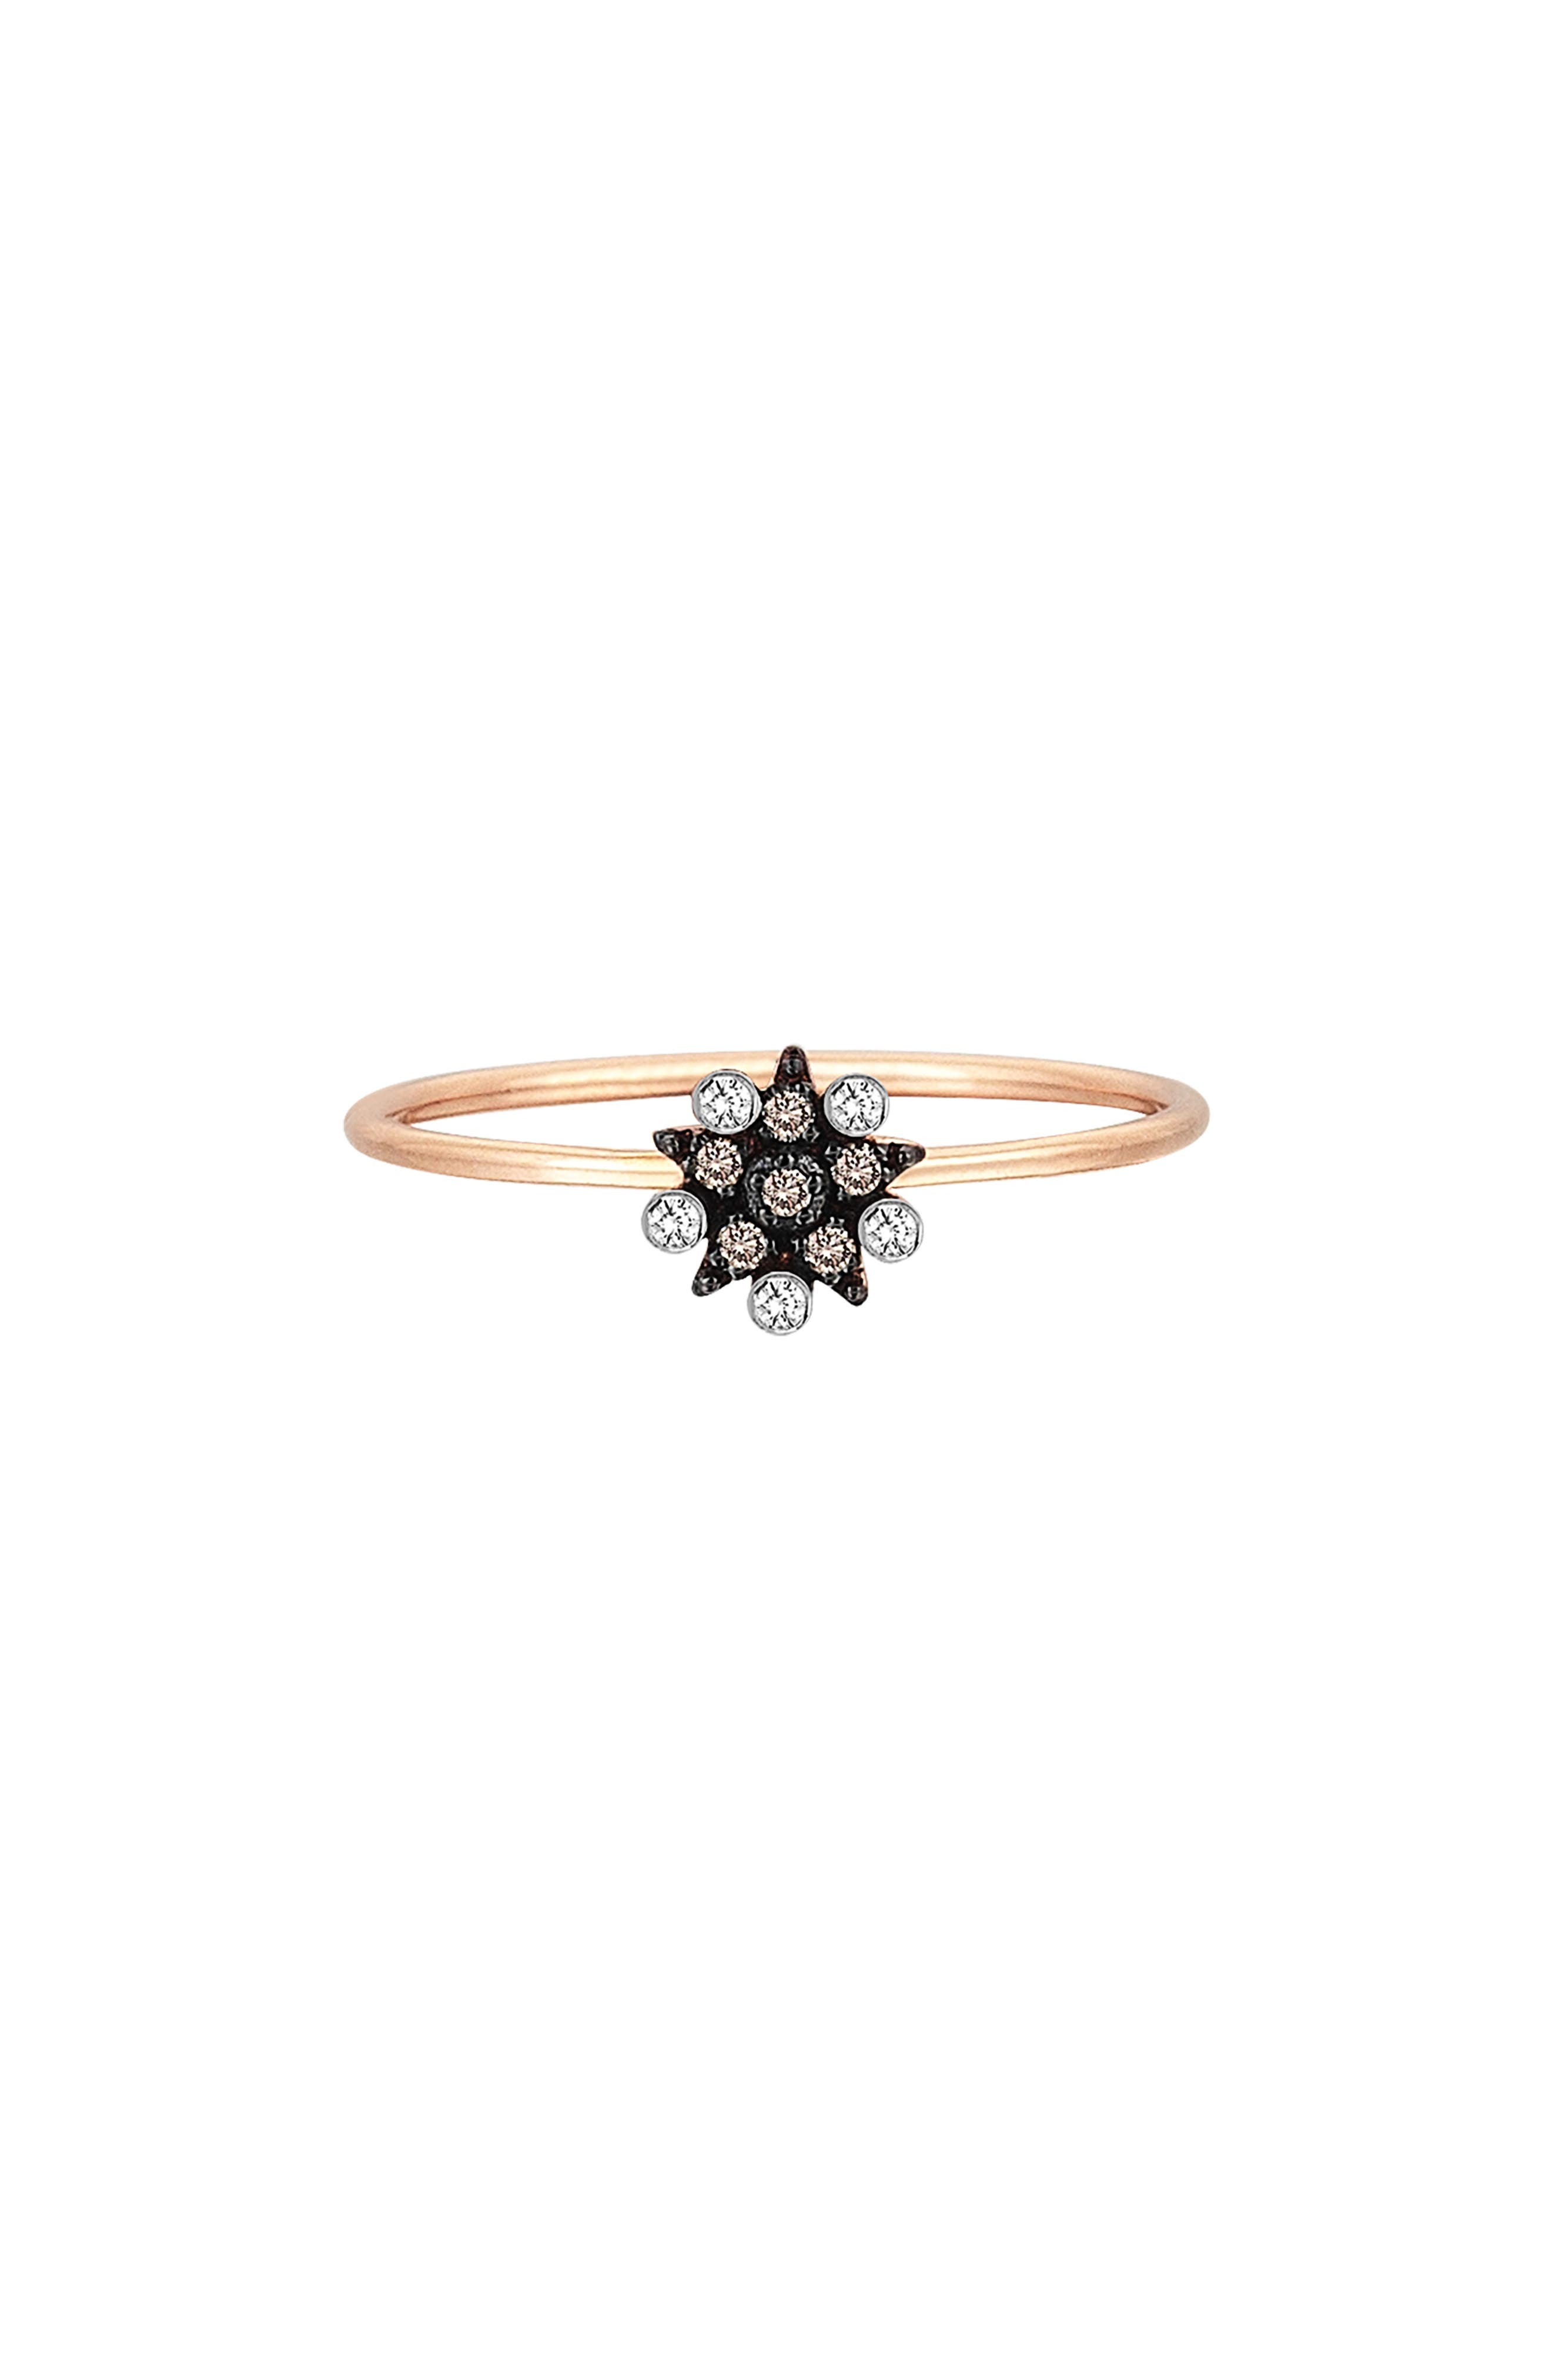 Main Image - Kismet by Milka Small Eclectic Diamond Star Stacking Ring